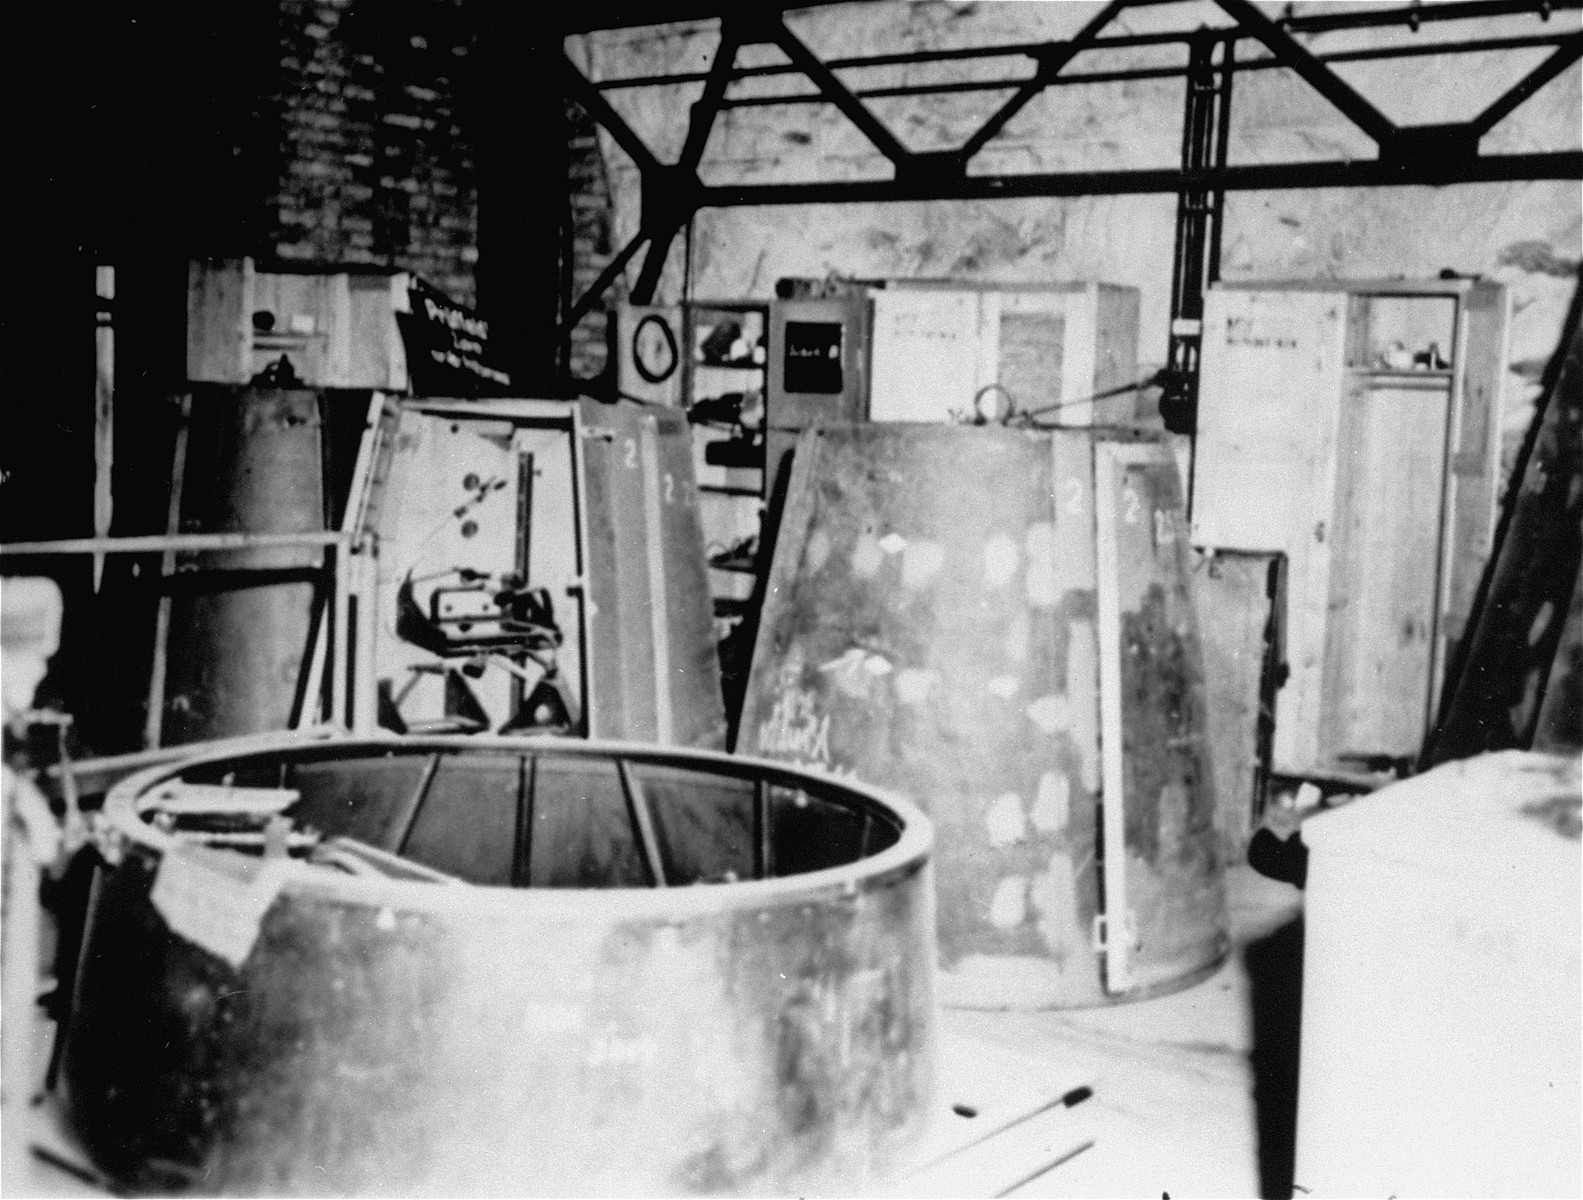 The testing department for the control section assembly of a V-2 rocket.